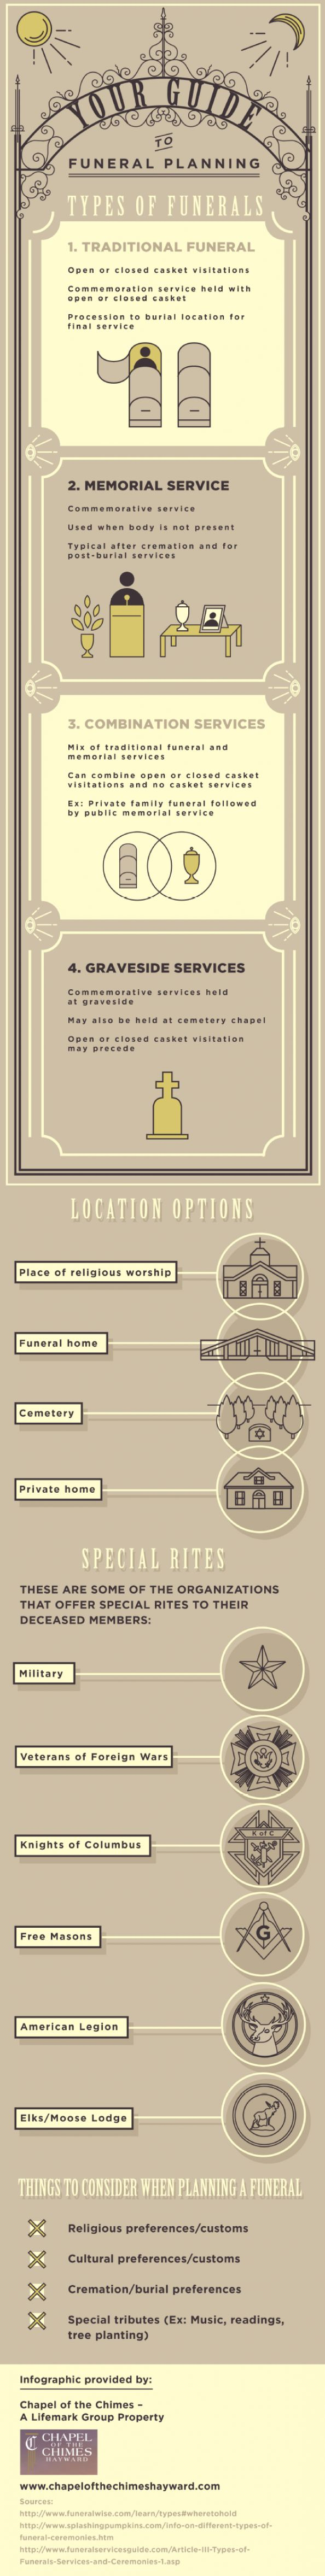 Your Guide to Funeral Planning Infographic